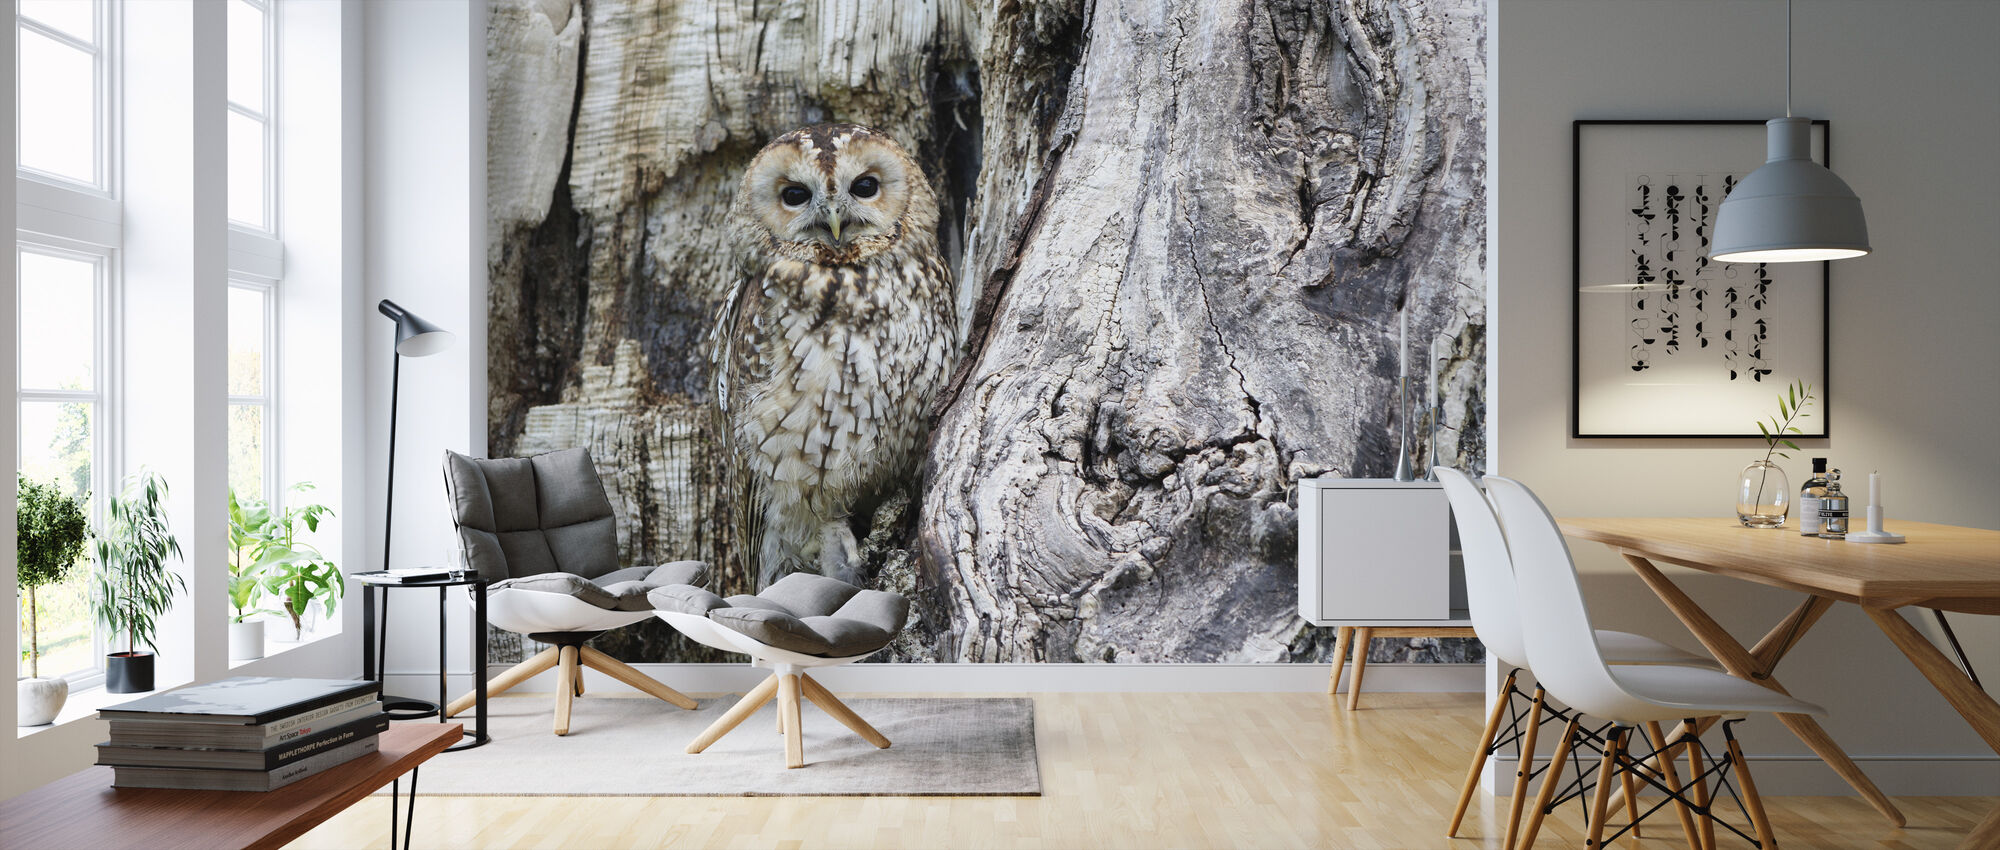 Camouflage Owl - Wallpaper - Living Room